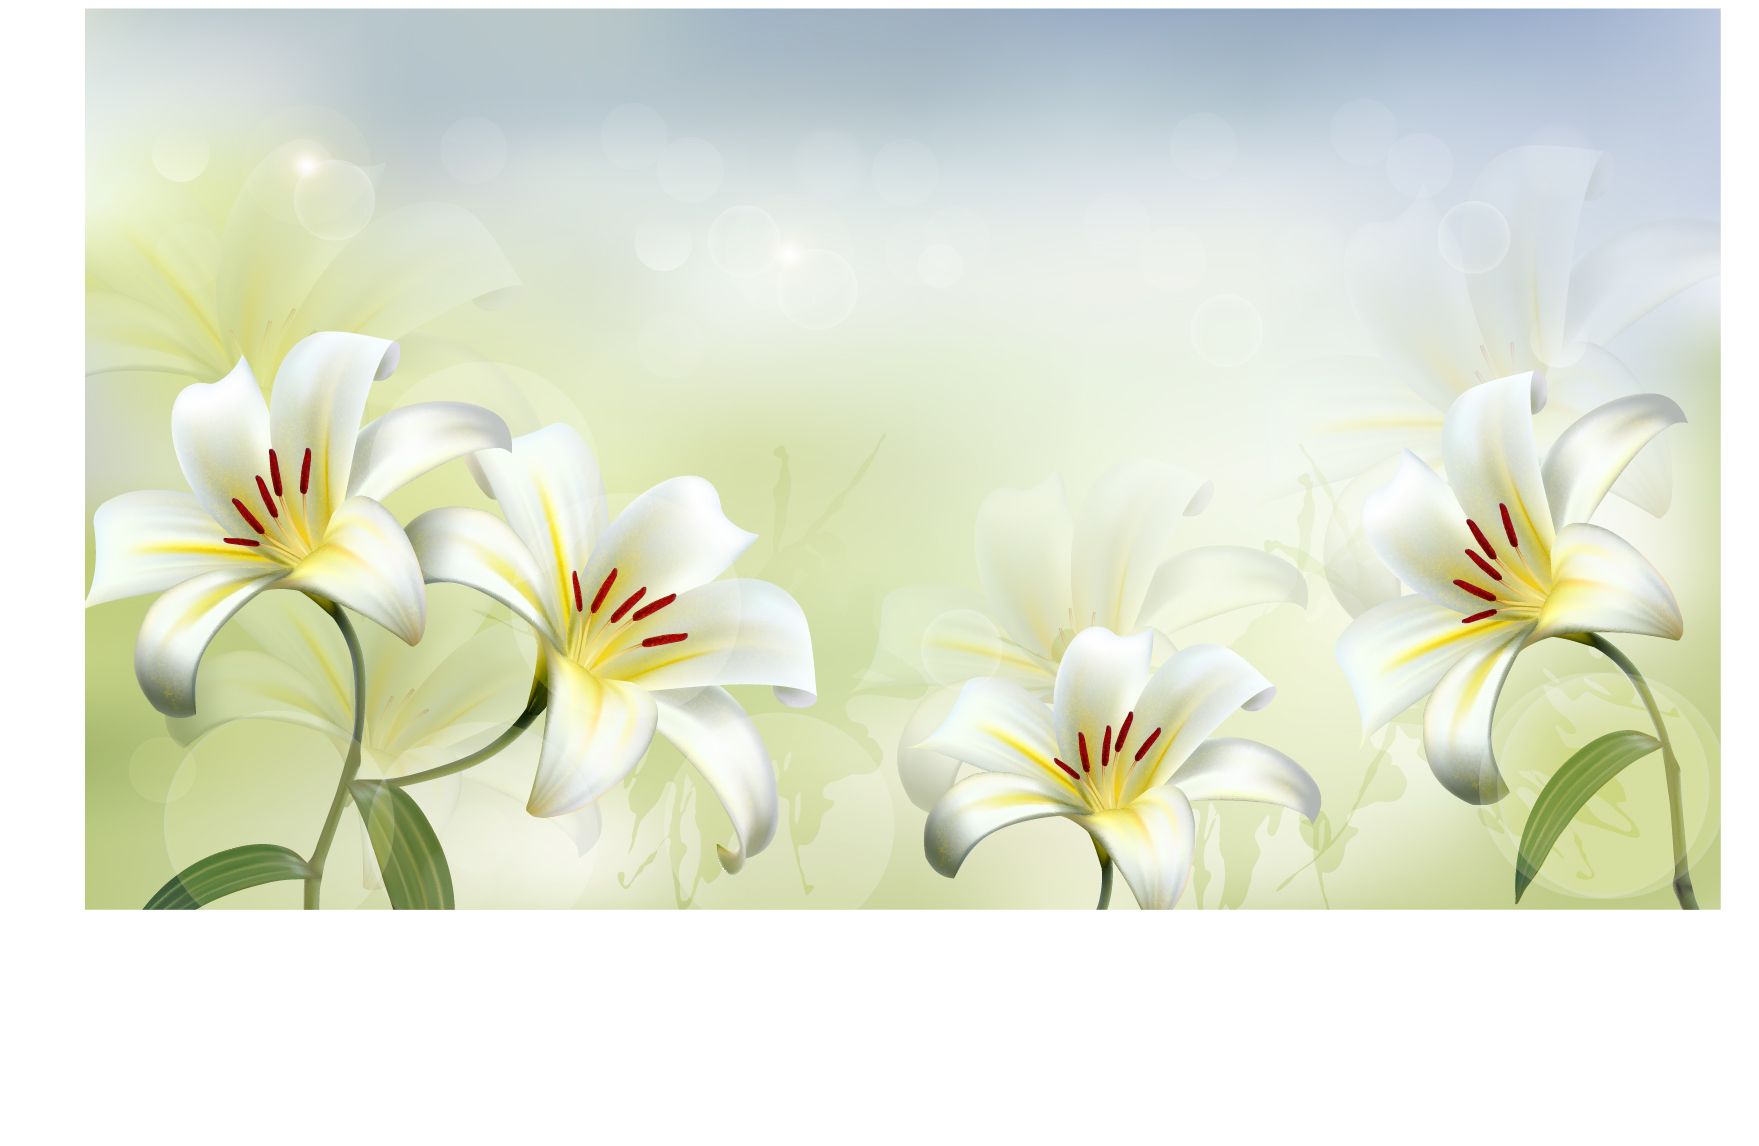 Beautiful white flower vector background 02 free vector downloads beautiful white flower vector background 02 free vector downloads site give mightylinksfo